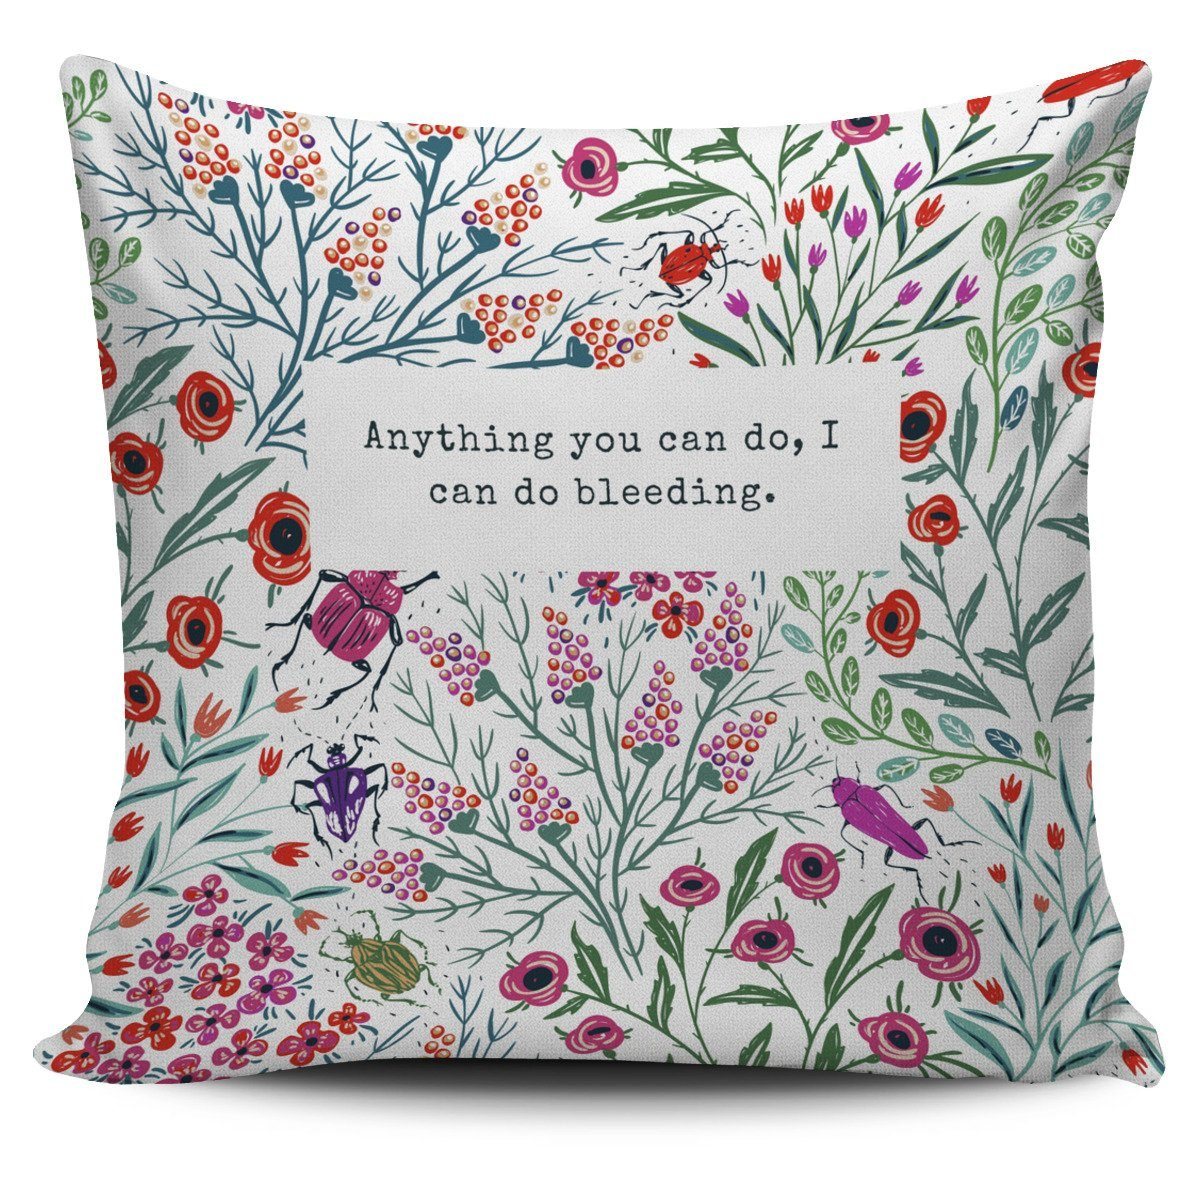 """Anything you can do."" Pillow Cover"